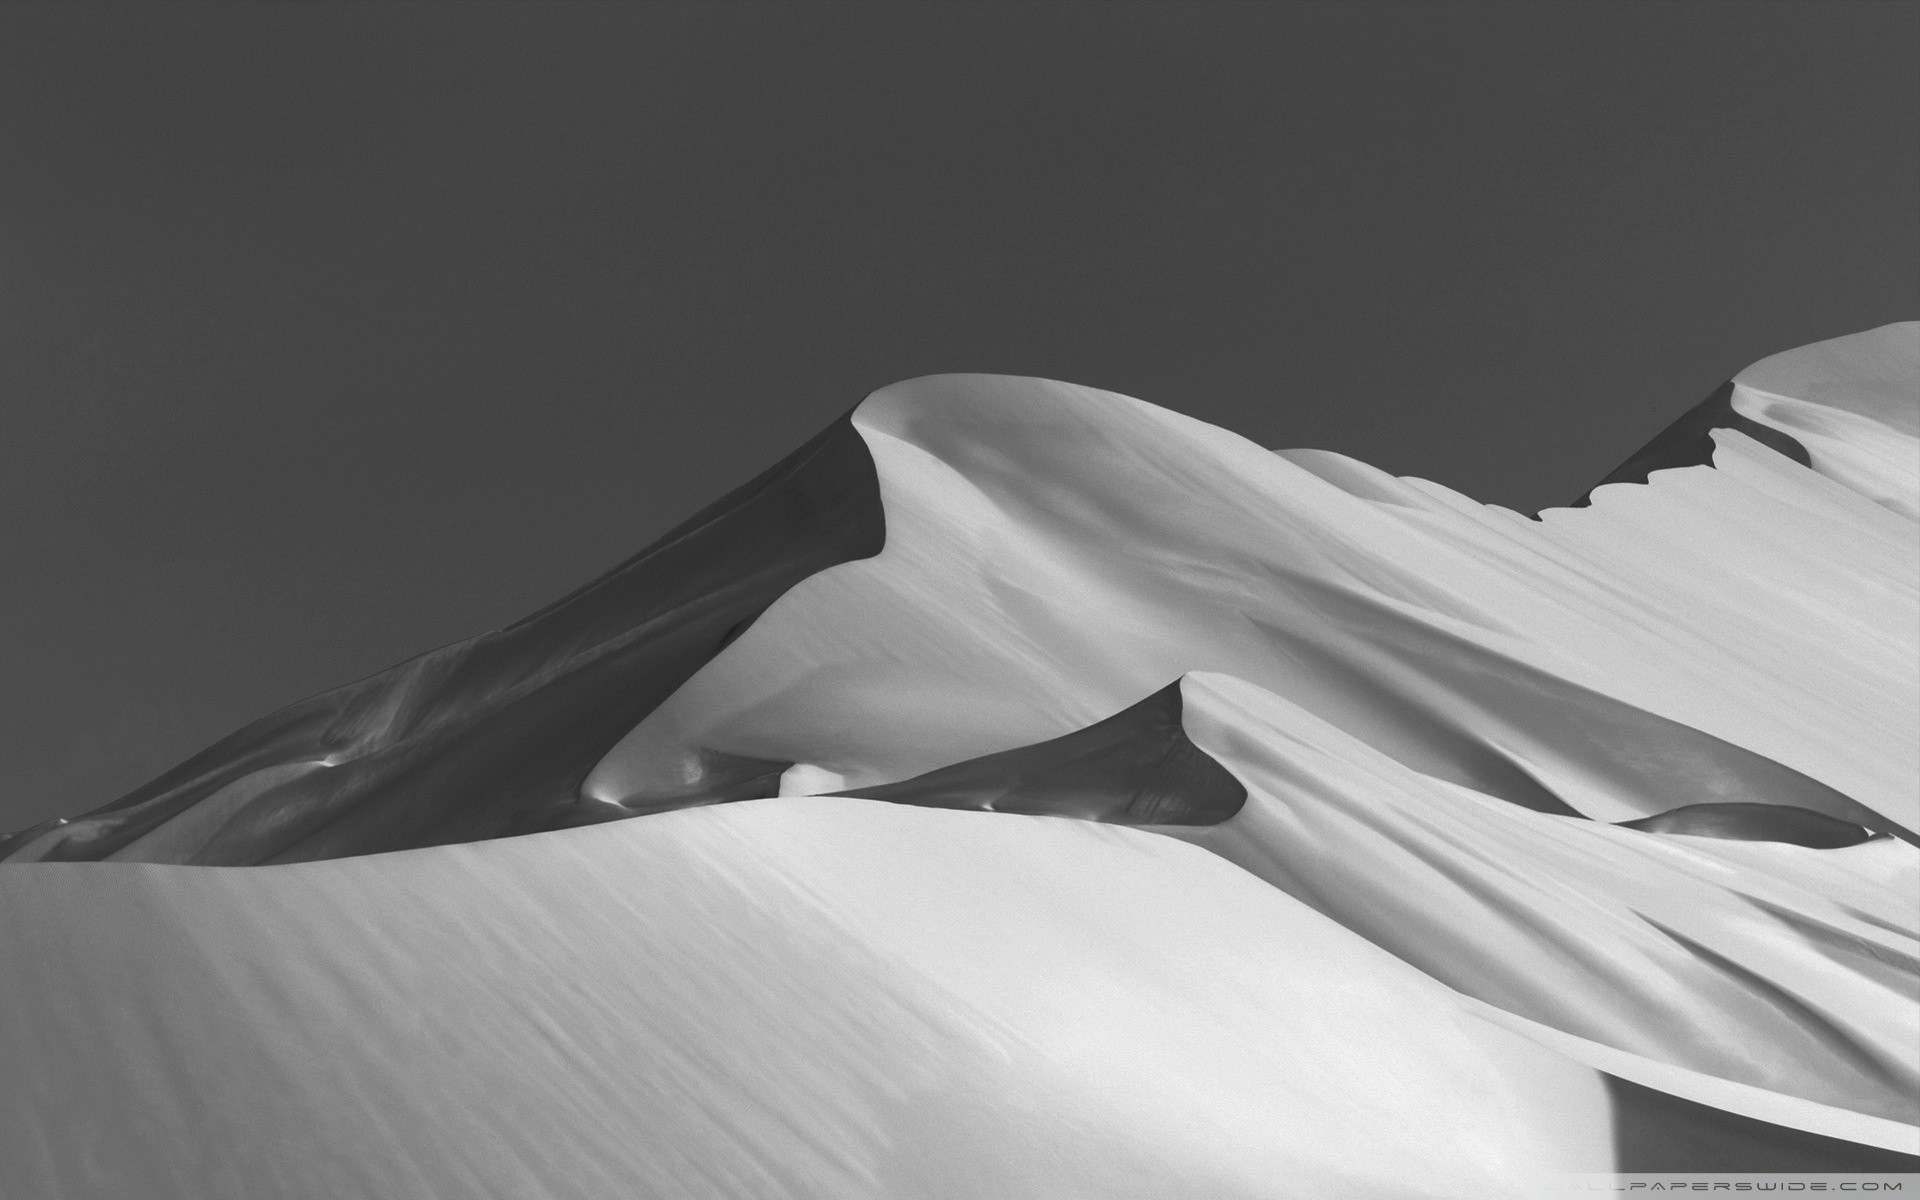 WallpapersWide.com | Black and White HD Desktop Wallpapers for .